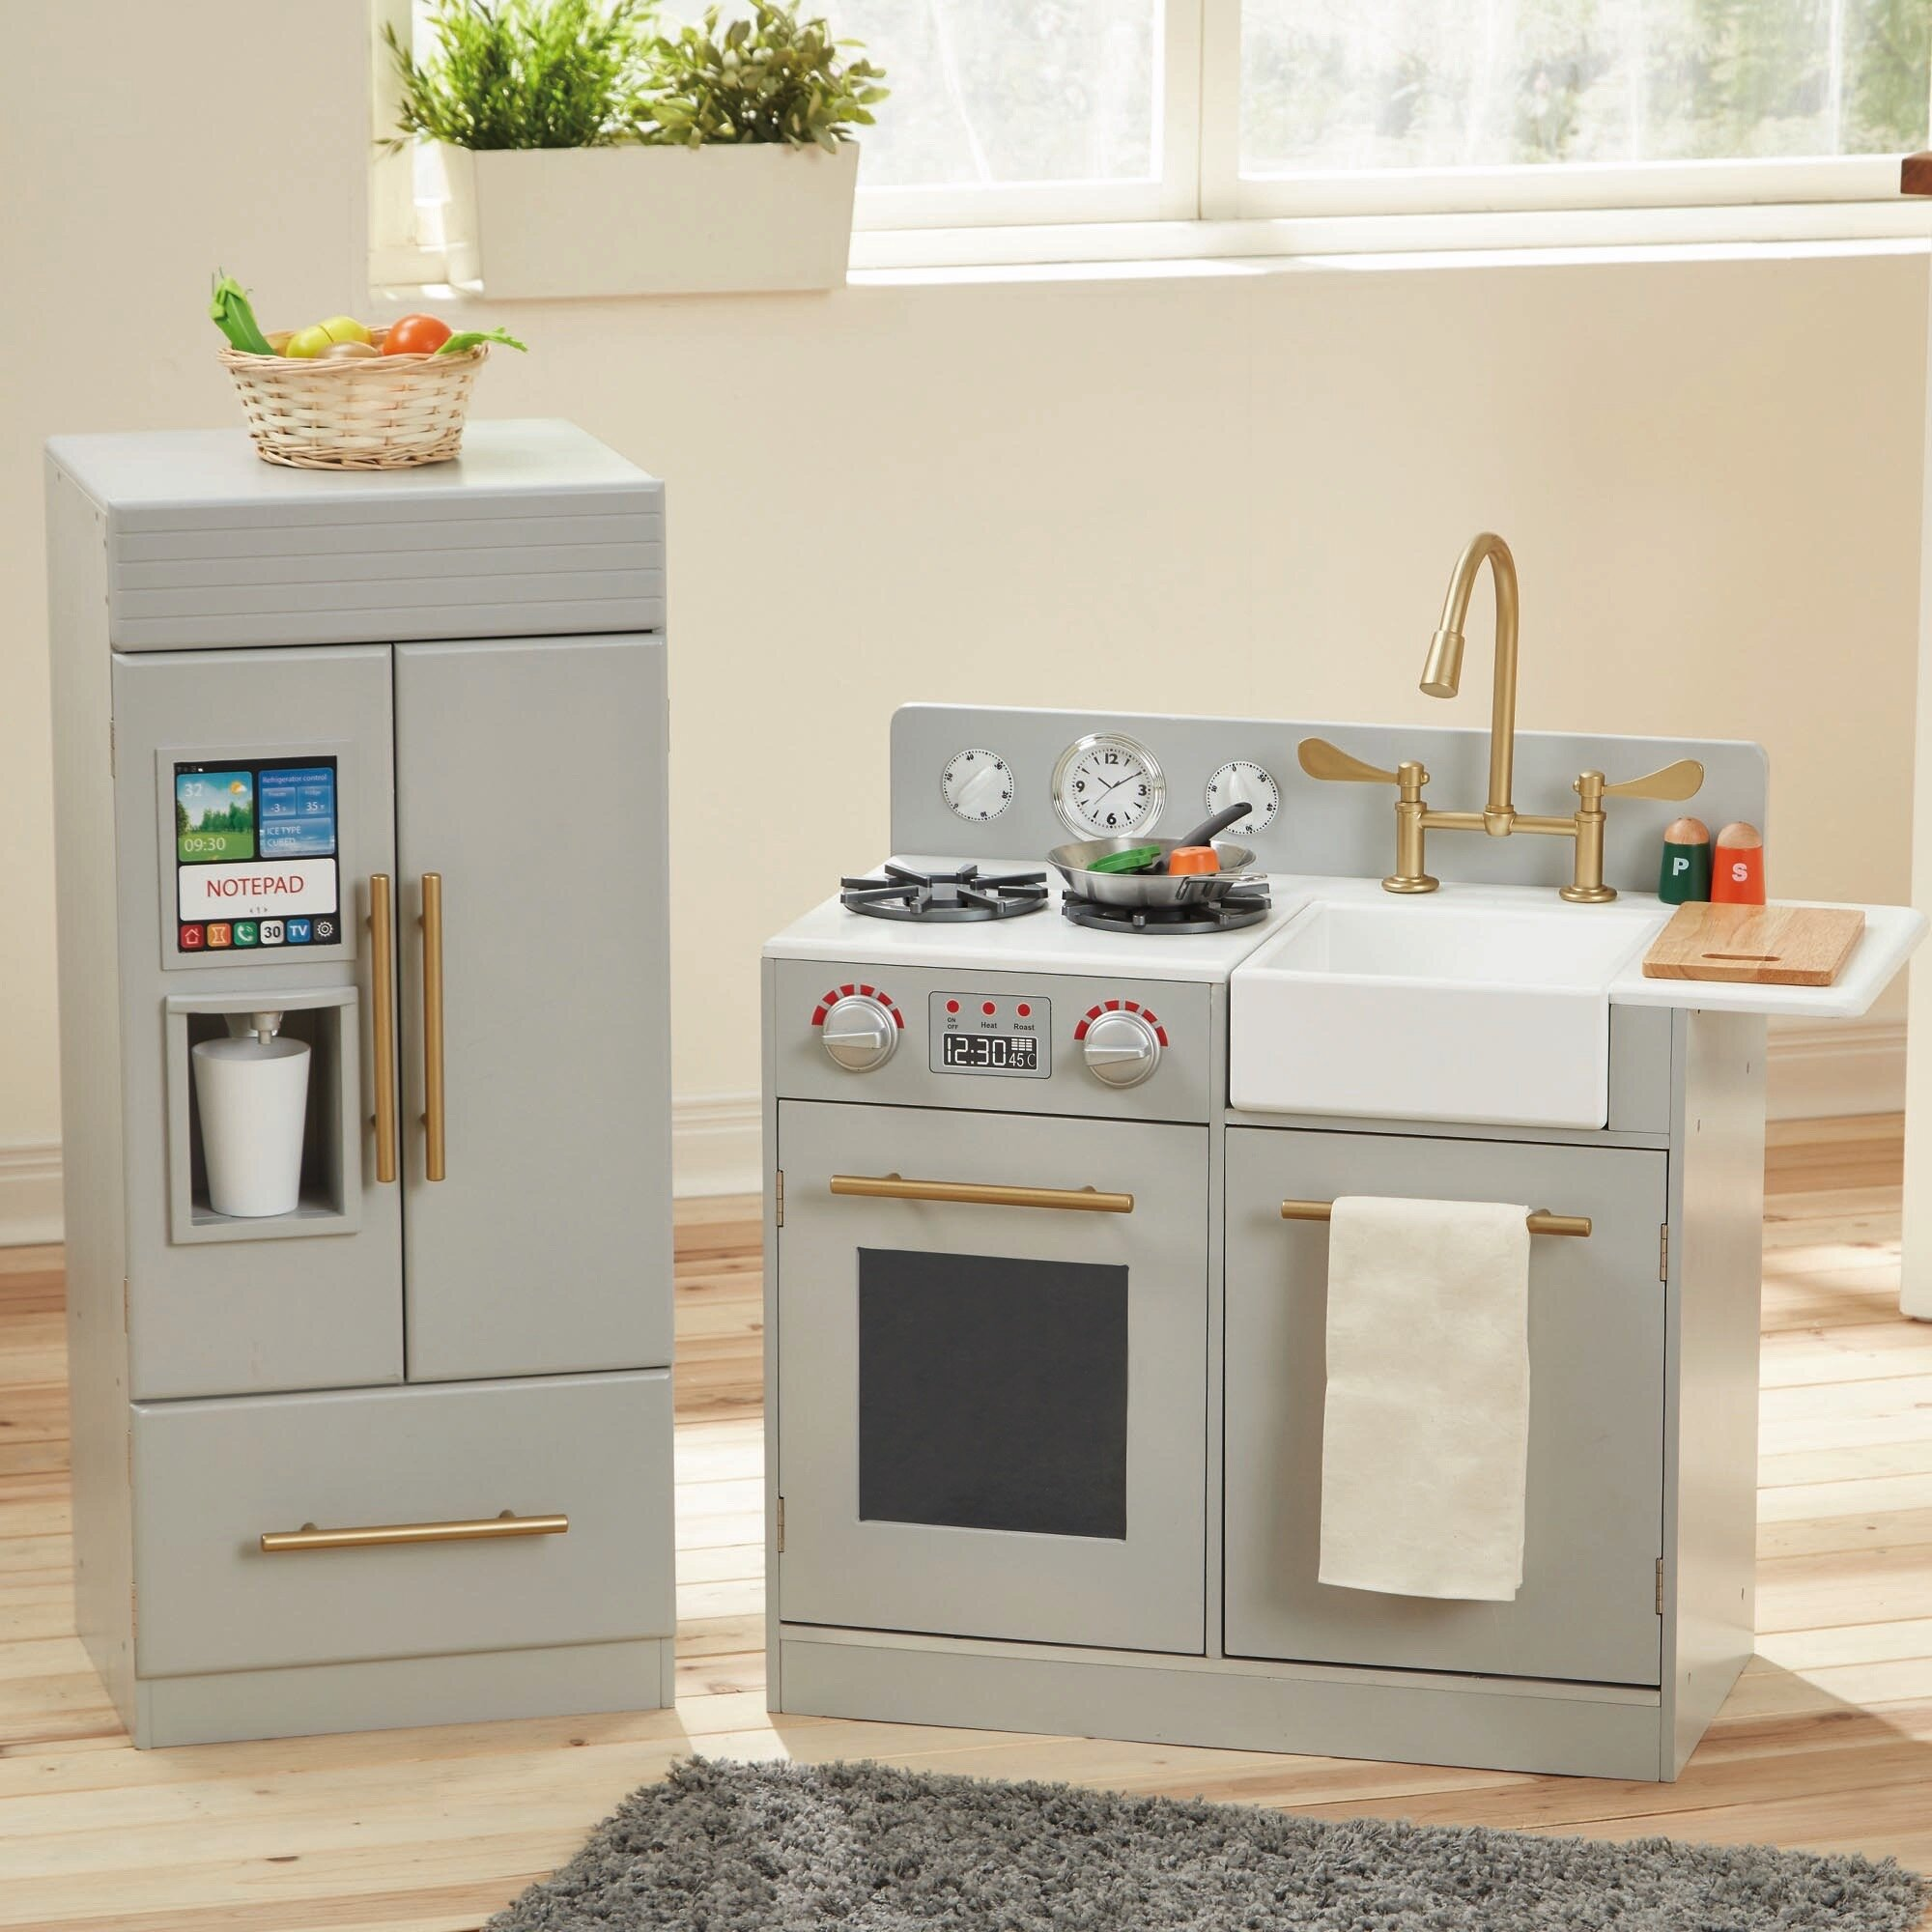 Kitchen Set Furniture Teamson Kids 2 Piece Urban Adventure Play Kitchen Set Reviews